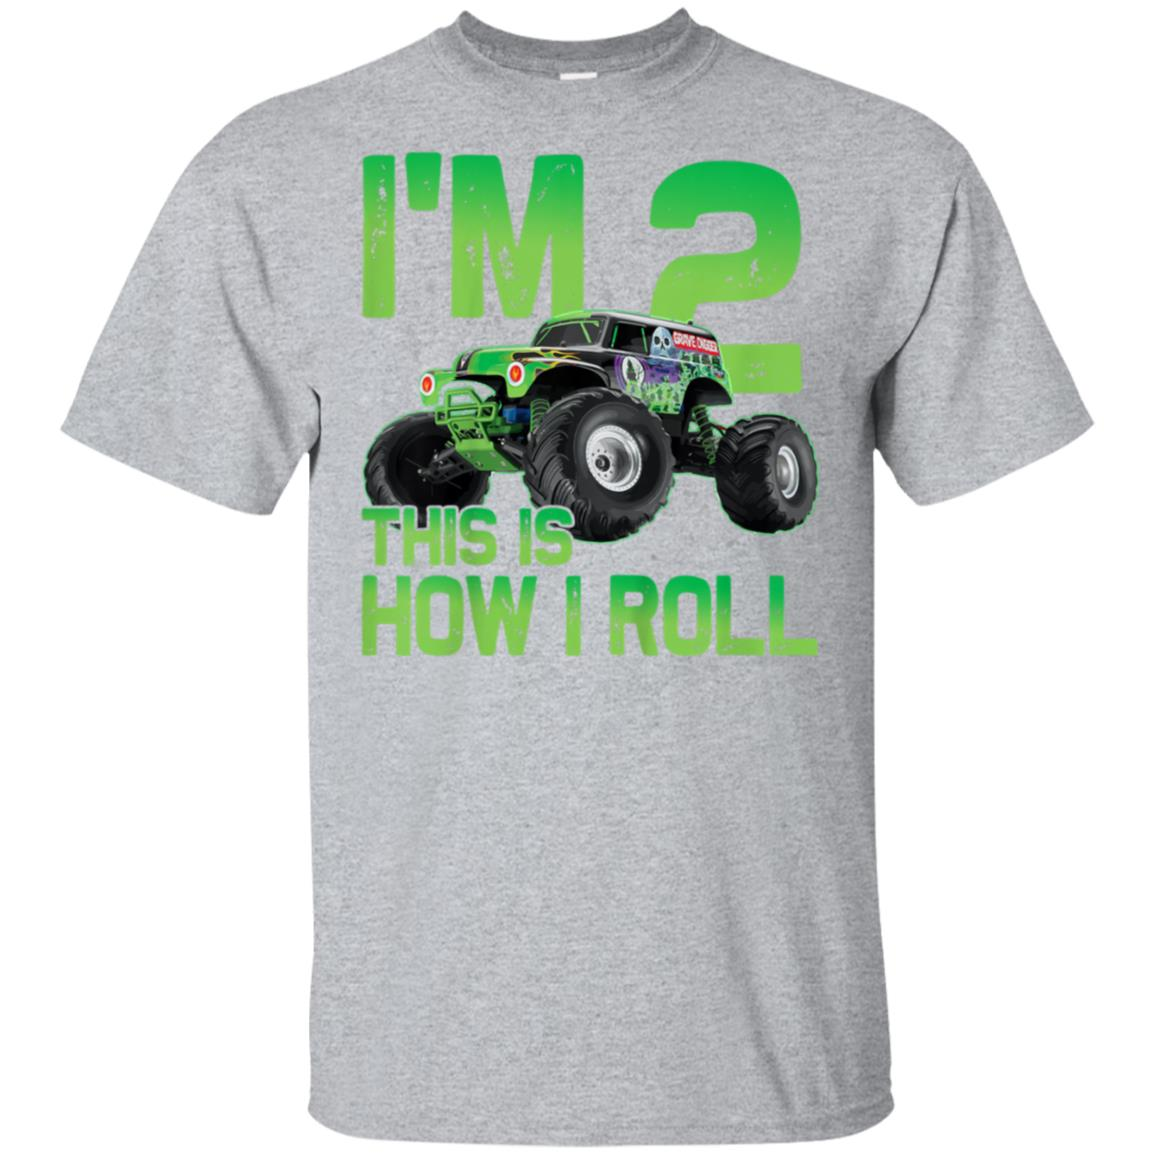 30a1fa1b8 Awesome kids 2 years old 2nd birthday monster truck car shirt boy son -  99promocode